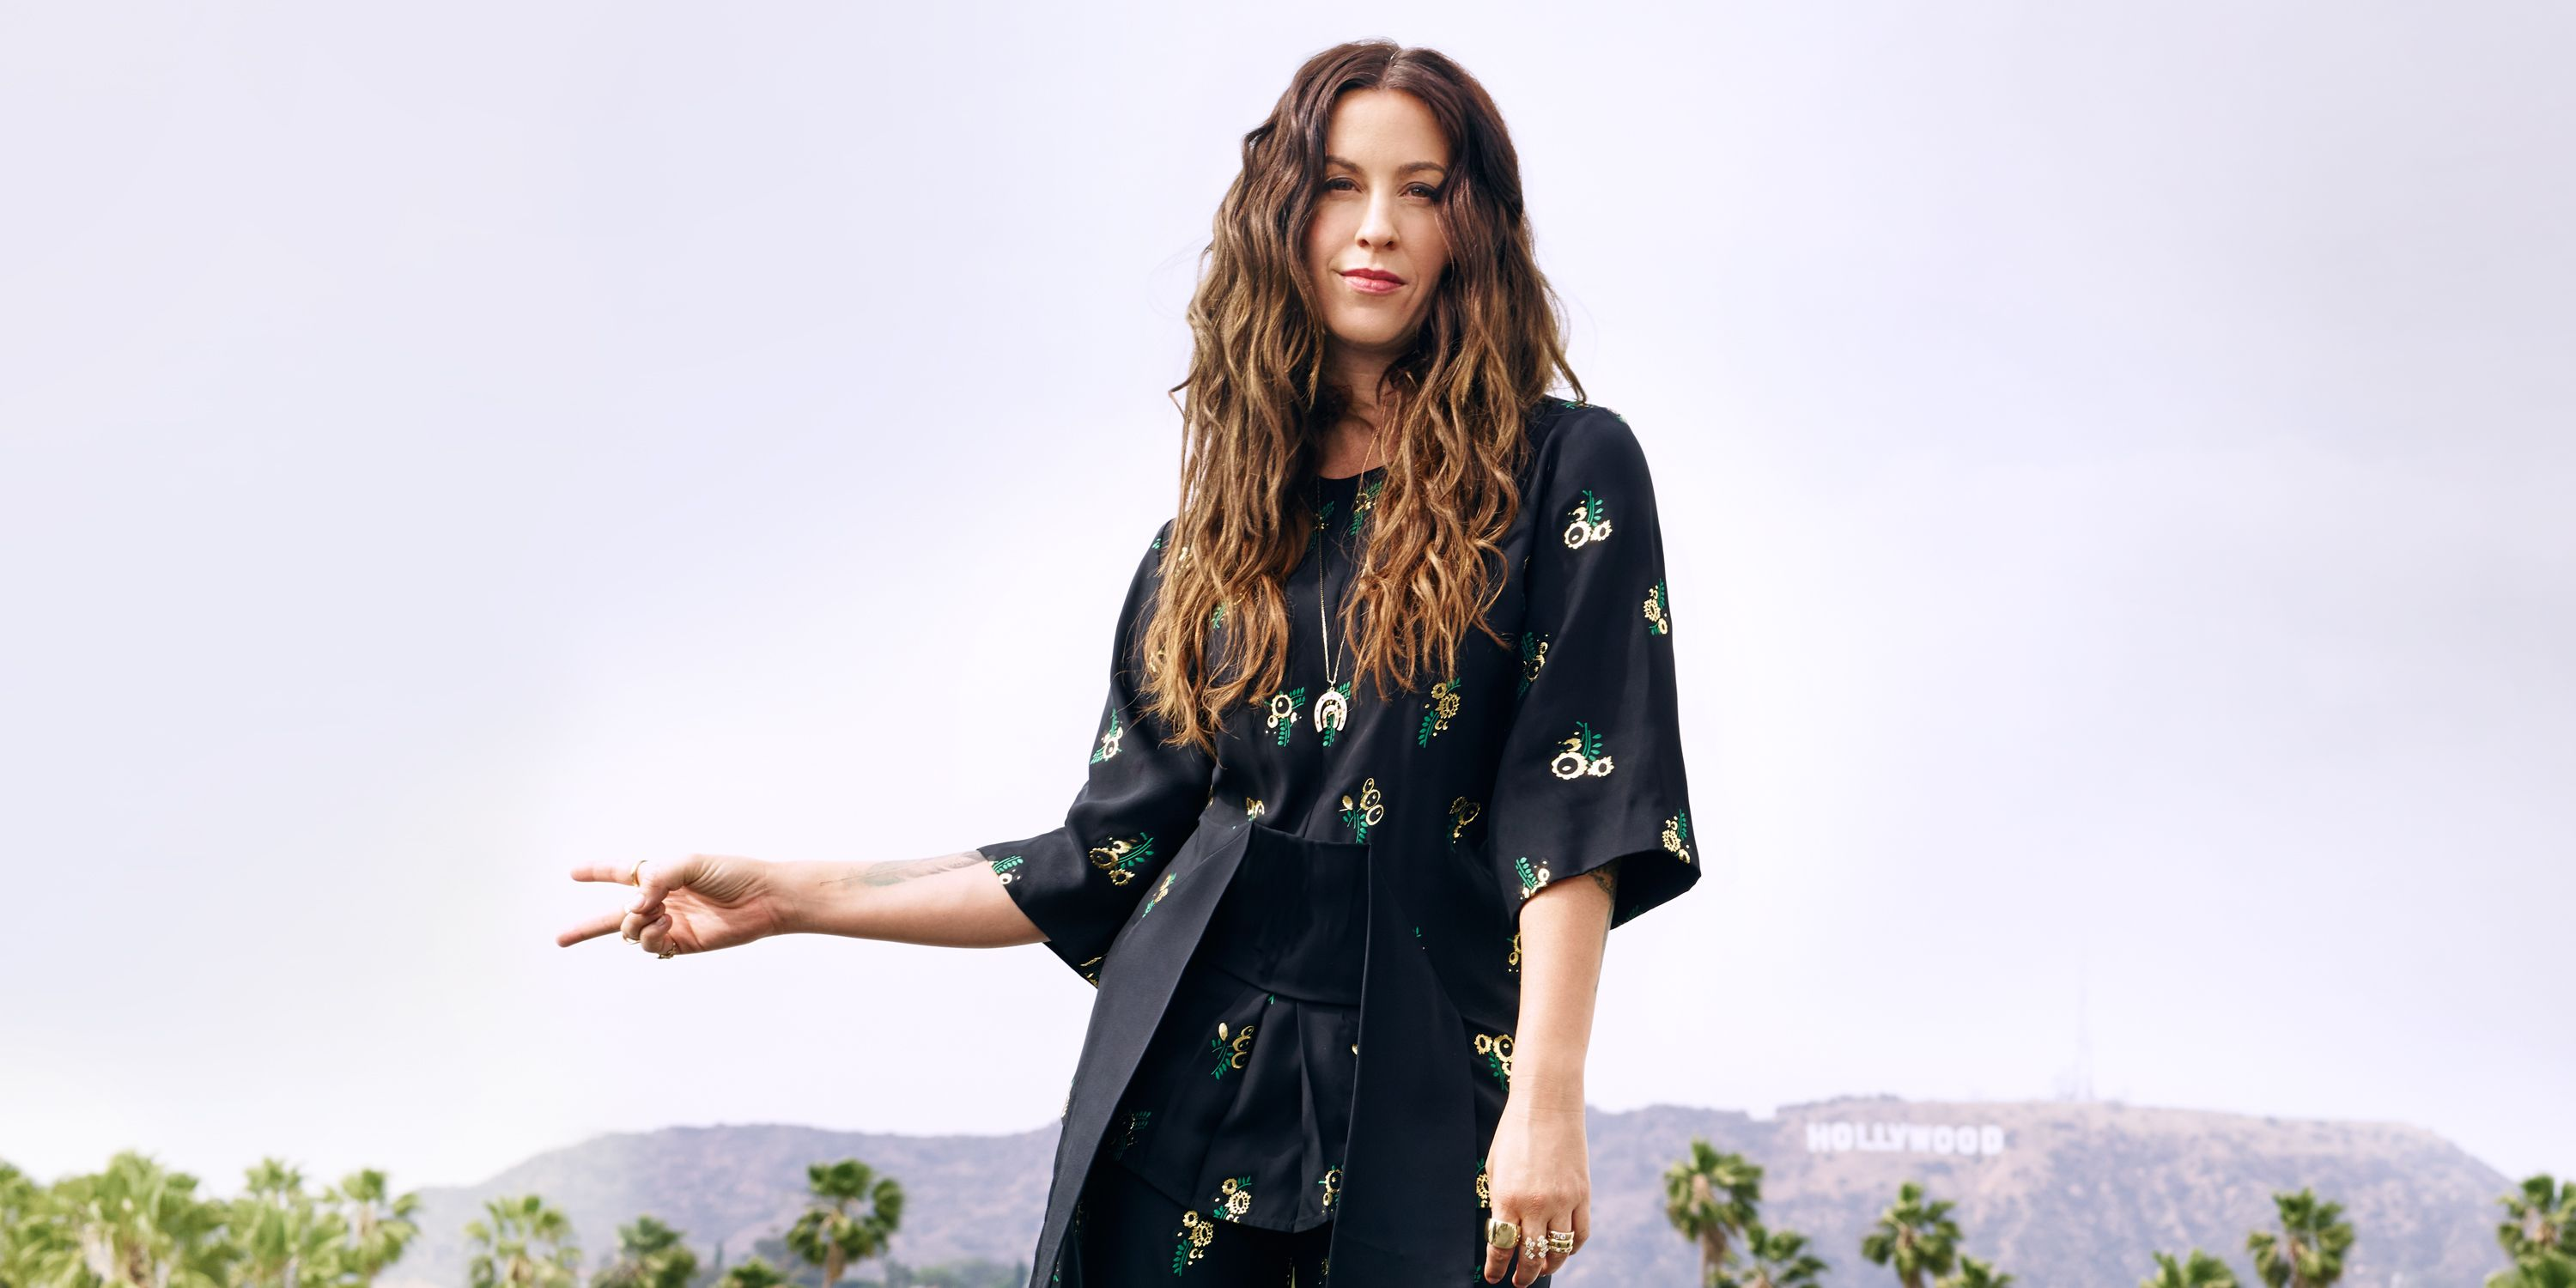 20 Years After Jagged Little Pill Alanis Morisette Gets The Last